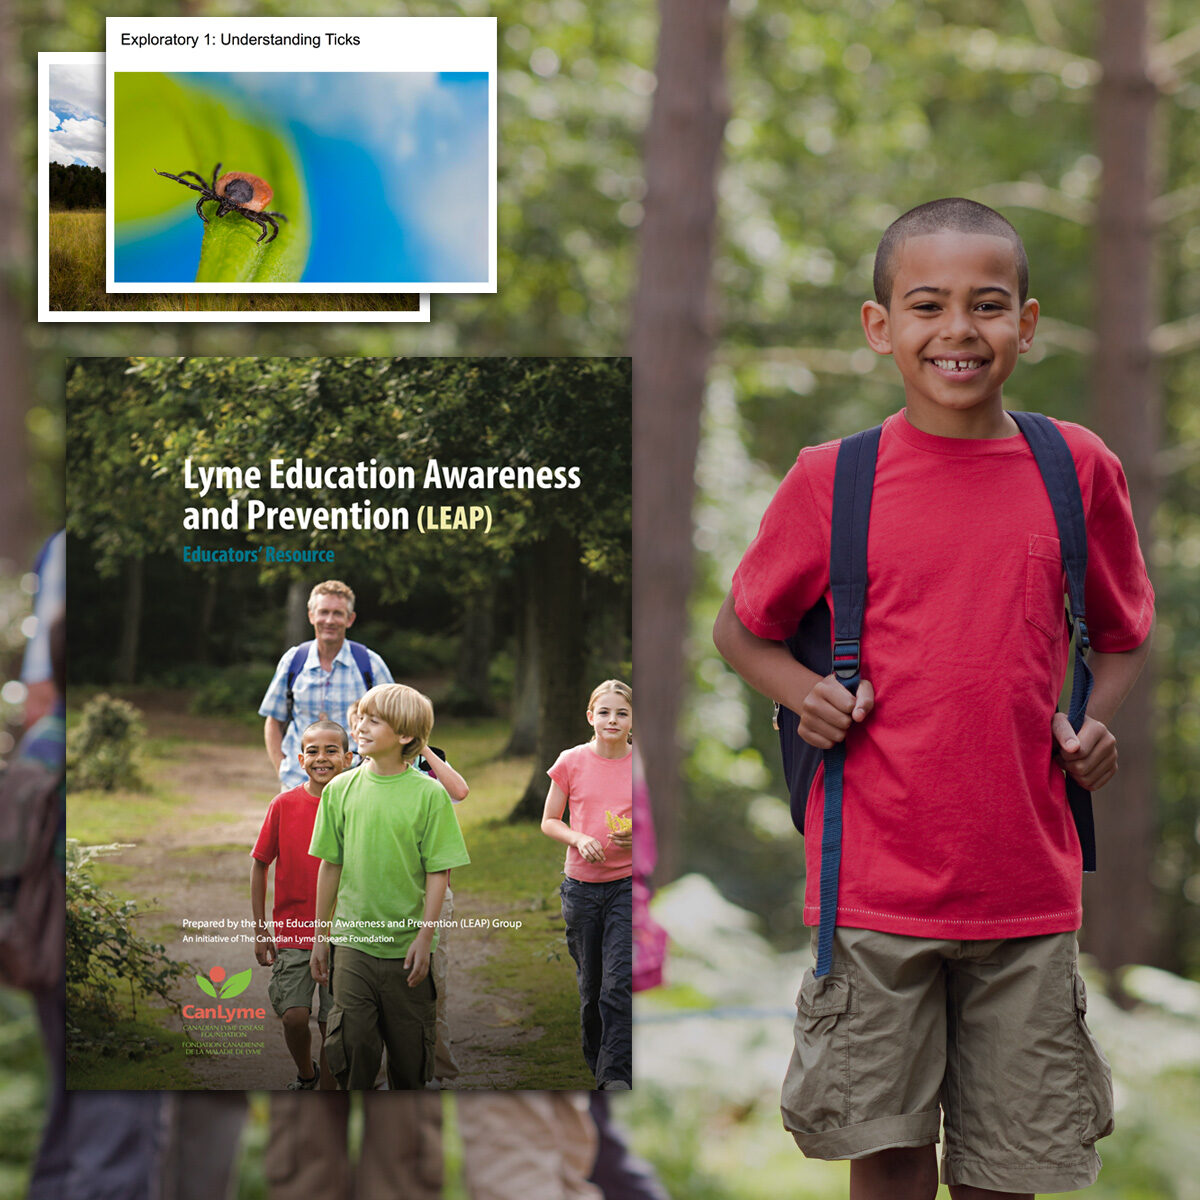 Resource cover and slides float in the air beside a young person enjoying the outdoors.